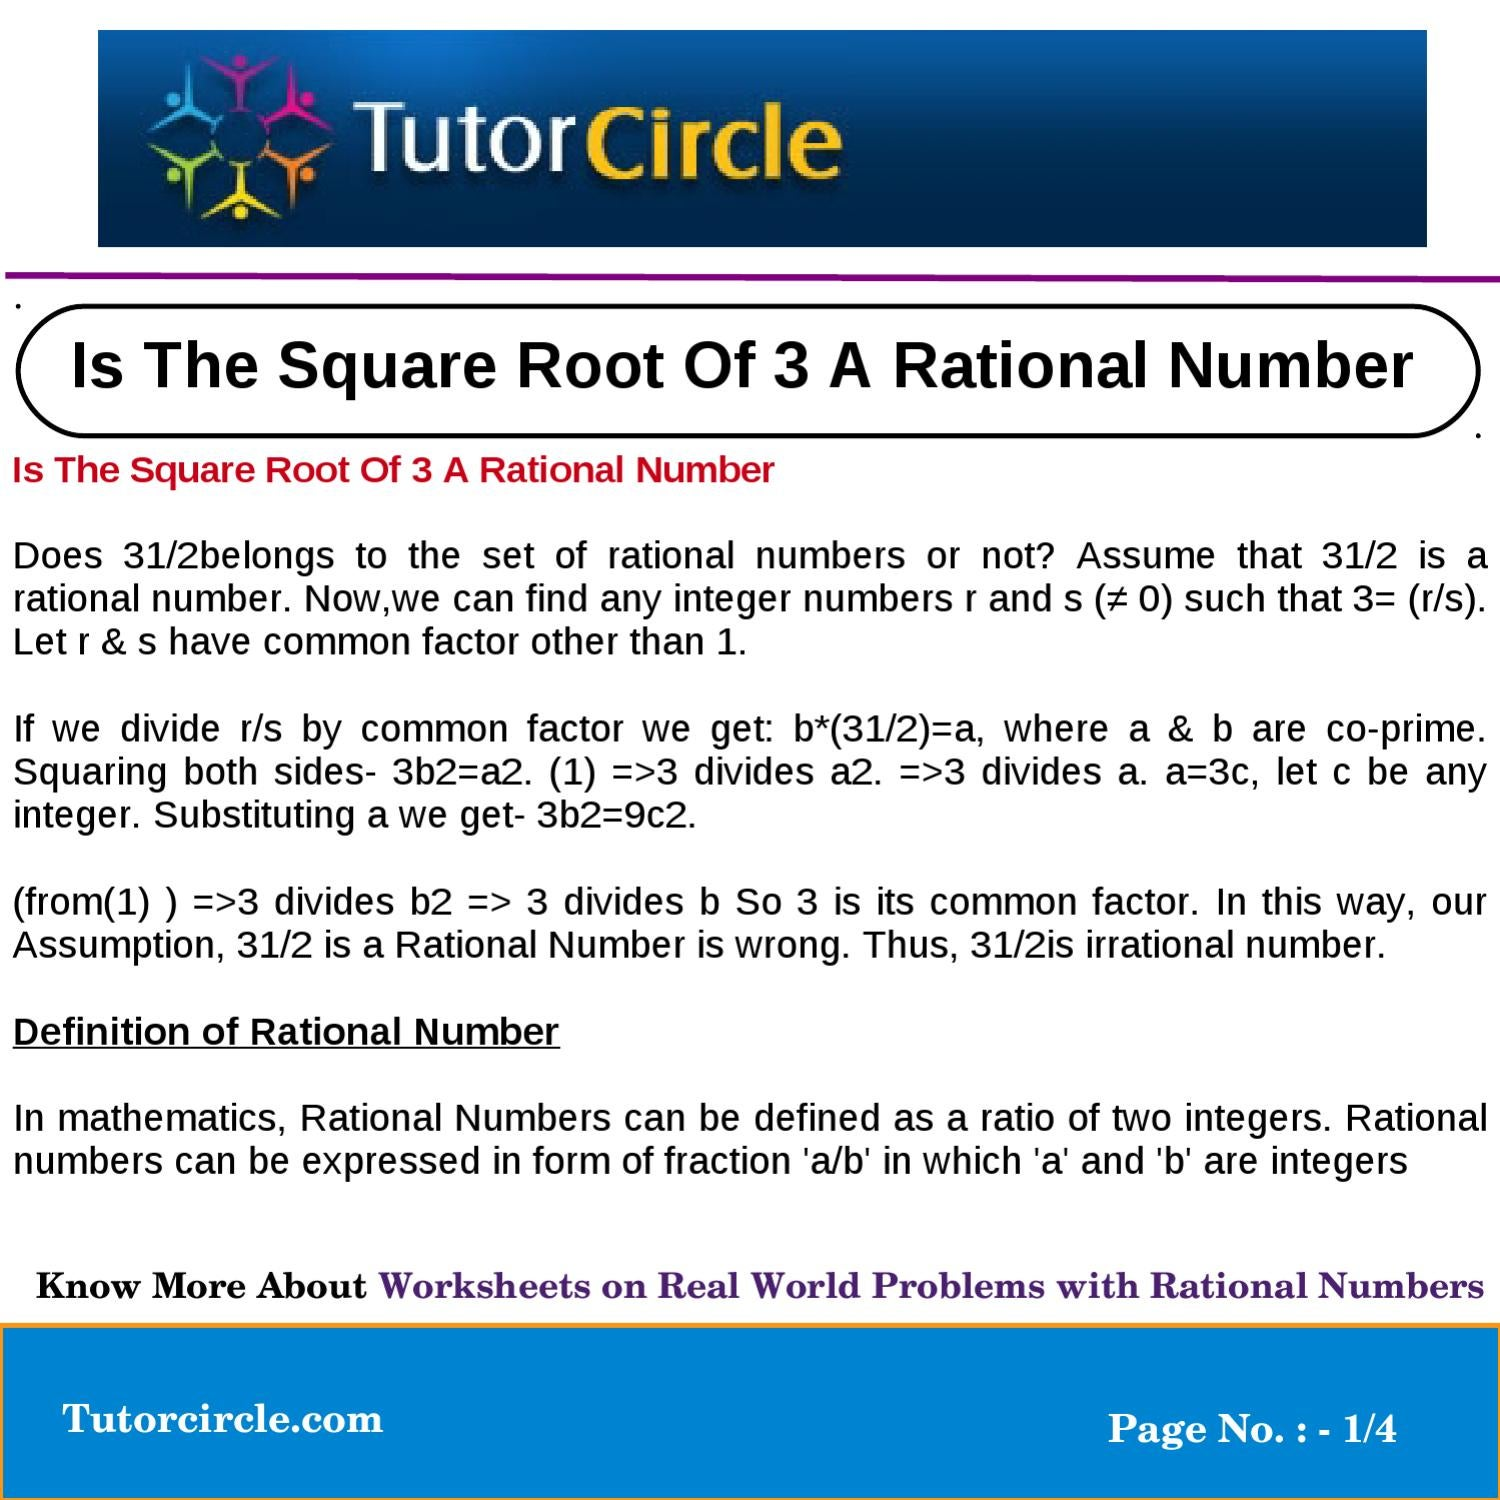 is the square root of 3 a rational number by tutorcircle team - issuu